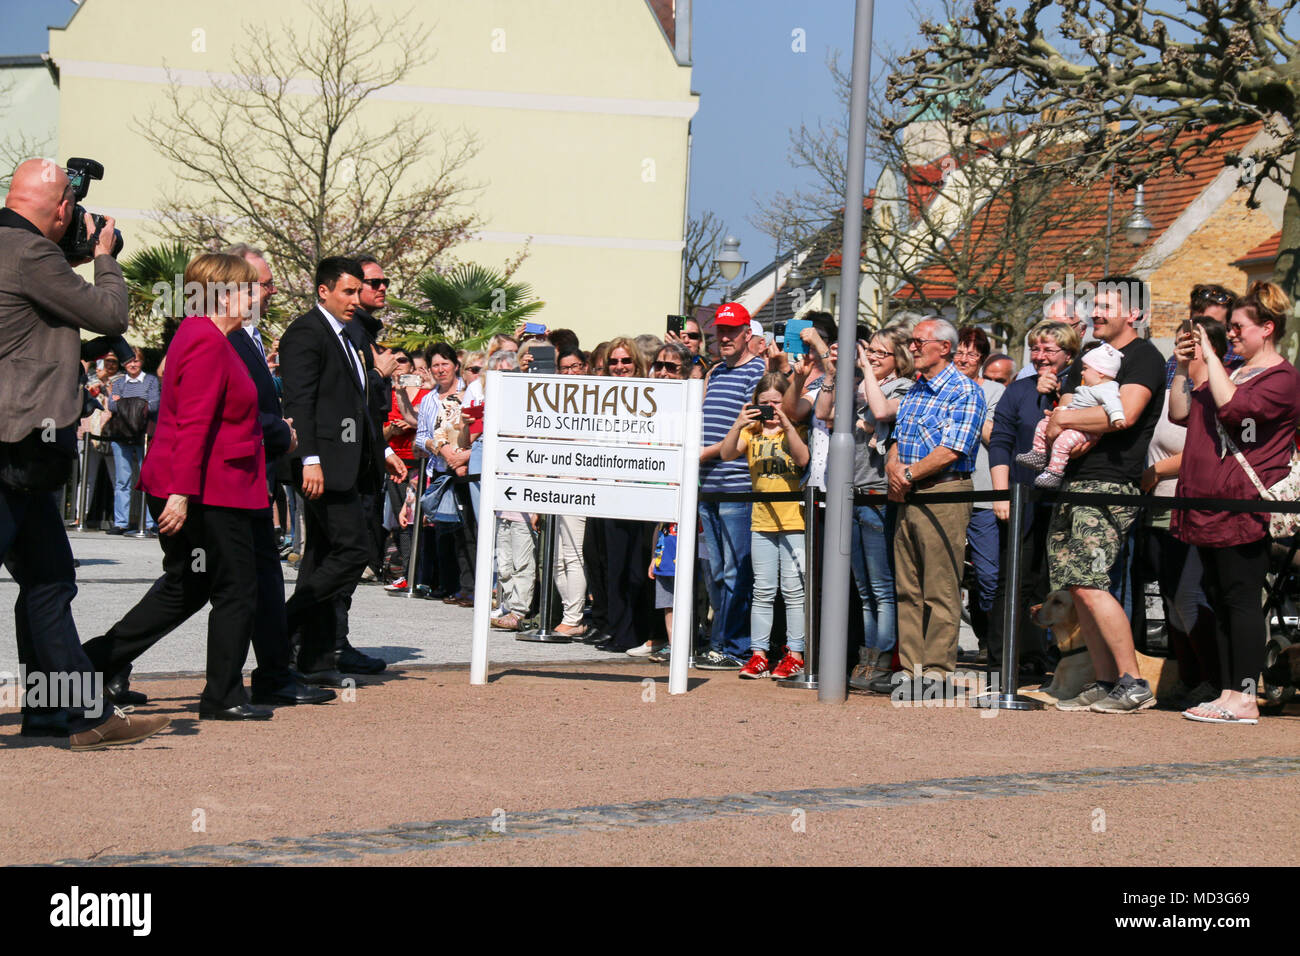 Bad Schmiedeberg, Germany - April 18, 2018: German Chancellor Angela Merkel approaches residents of Bad Schmiedeberg spontaneously. It is greeted with cheers, something that has not been seen in any East German city for a long time. Credit: Mattis Kaminer/Alamy Live News - Stock Image